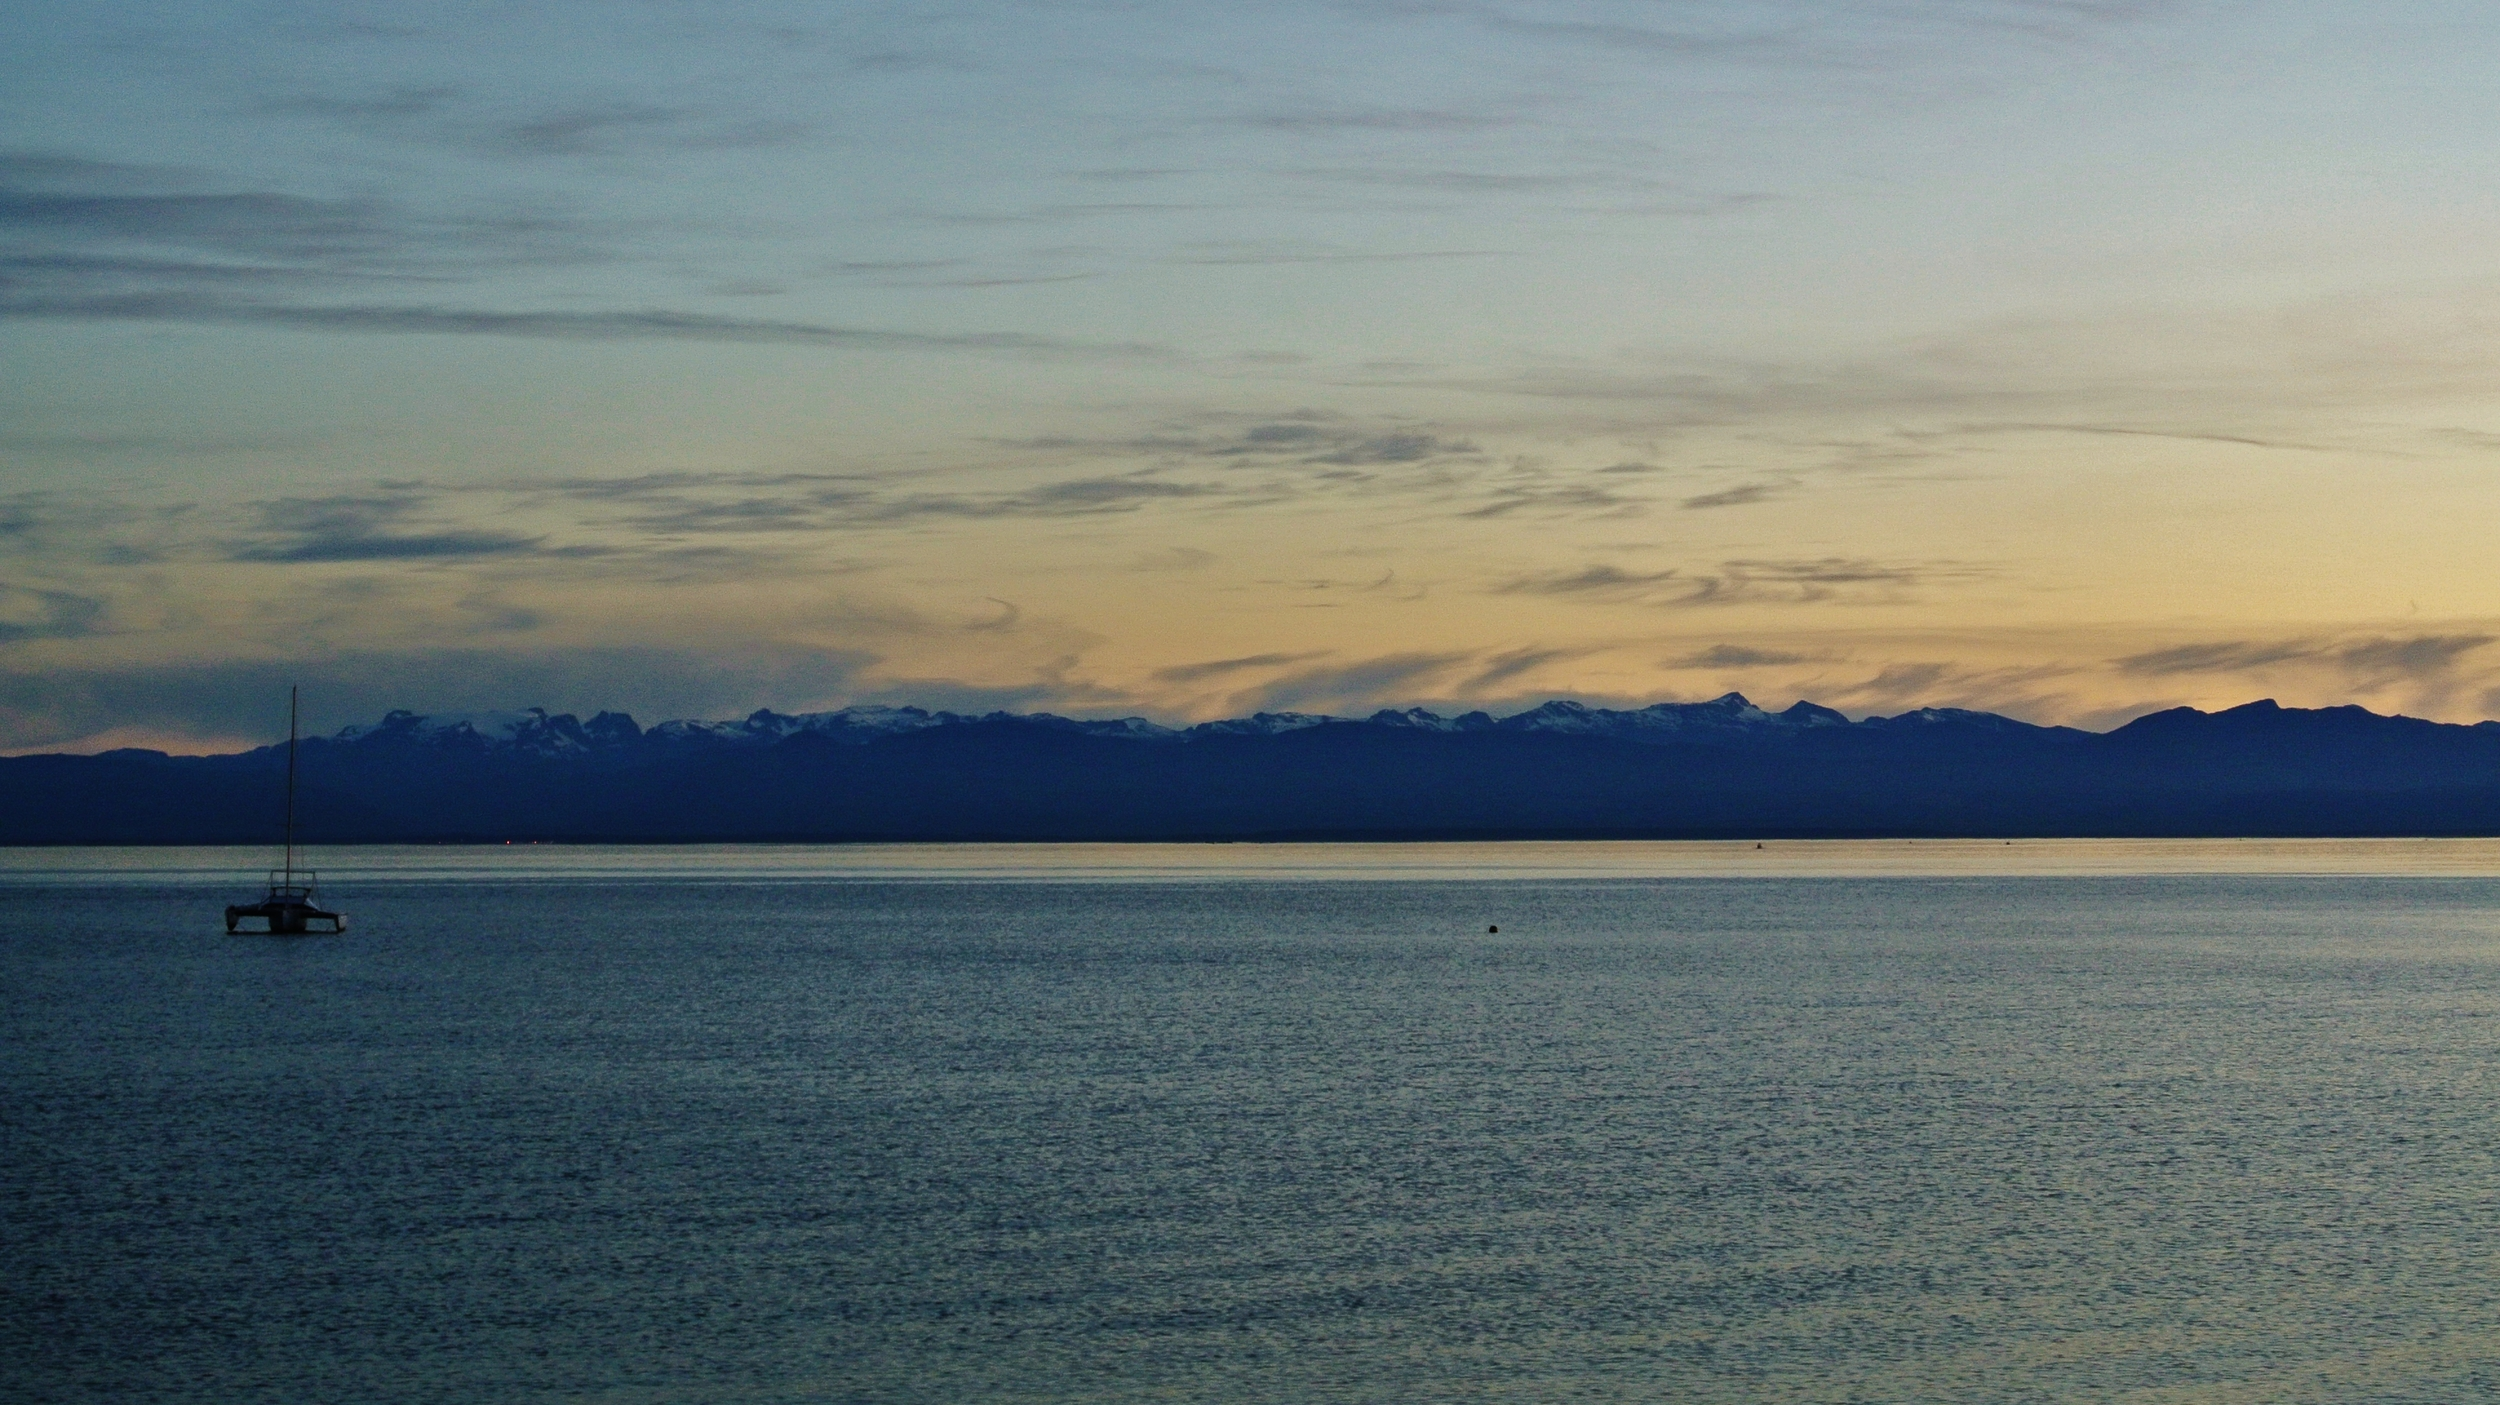 Looking across to Vancouver Island